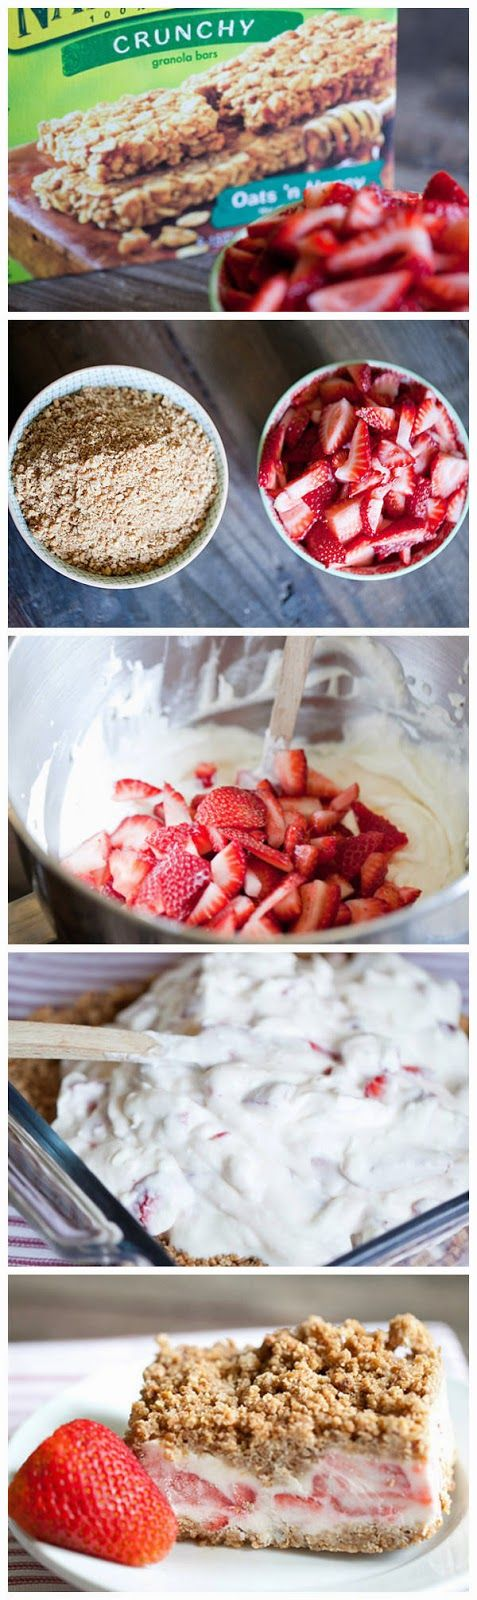 Frozen Strawberry Crunch Cake - simplexfood